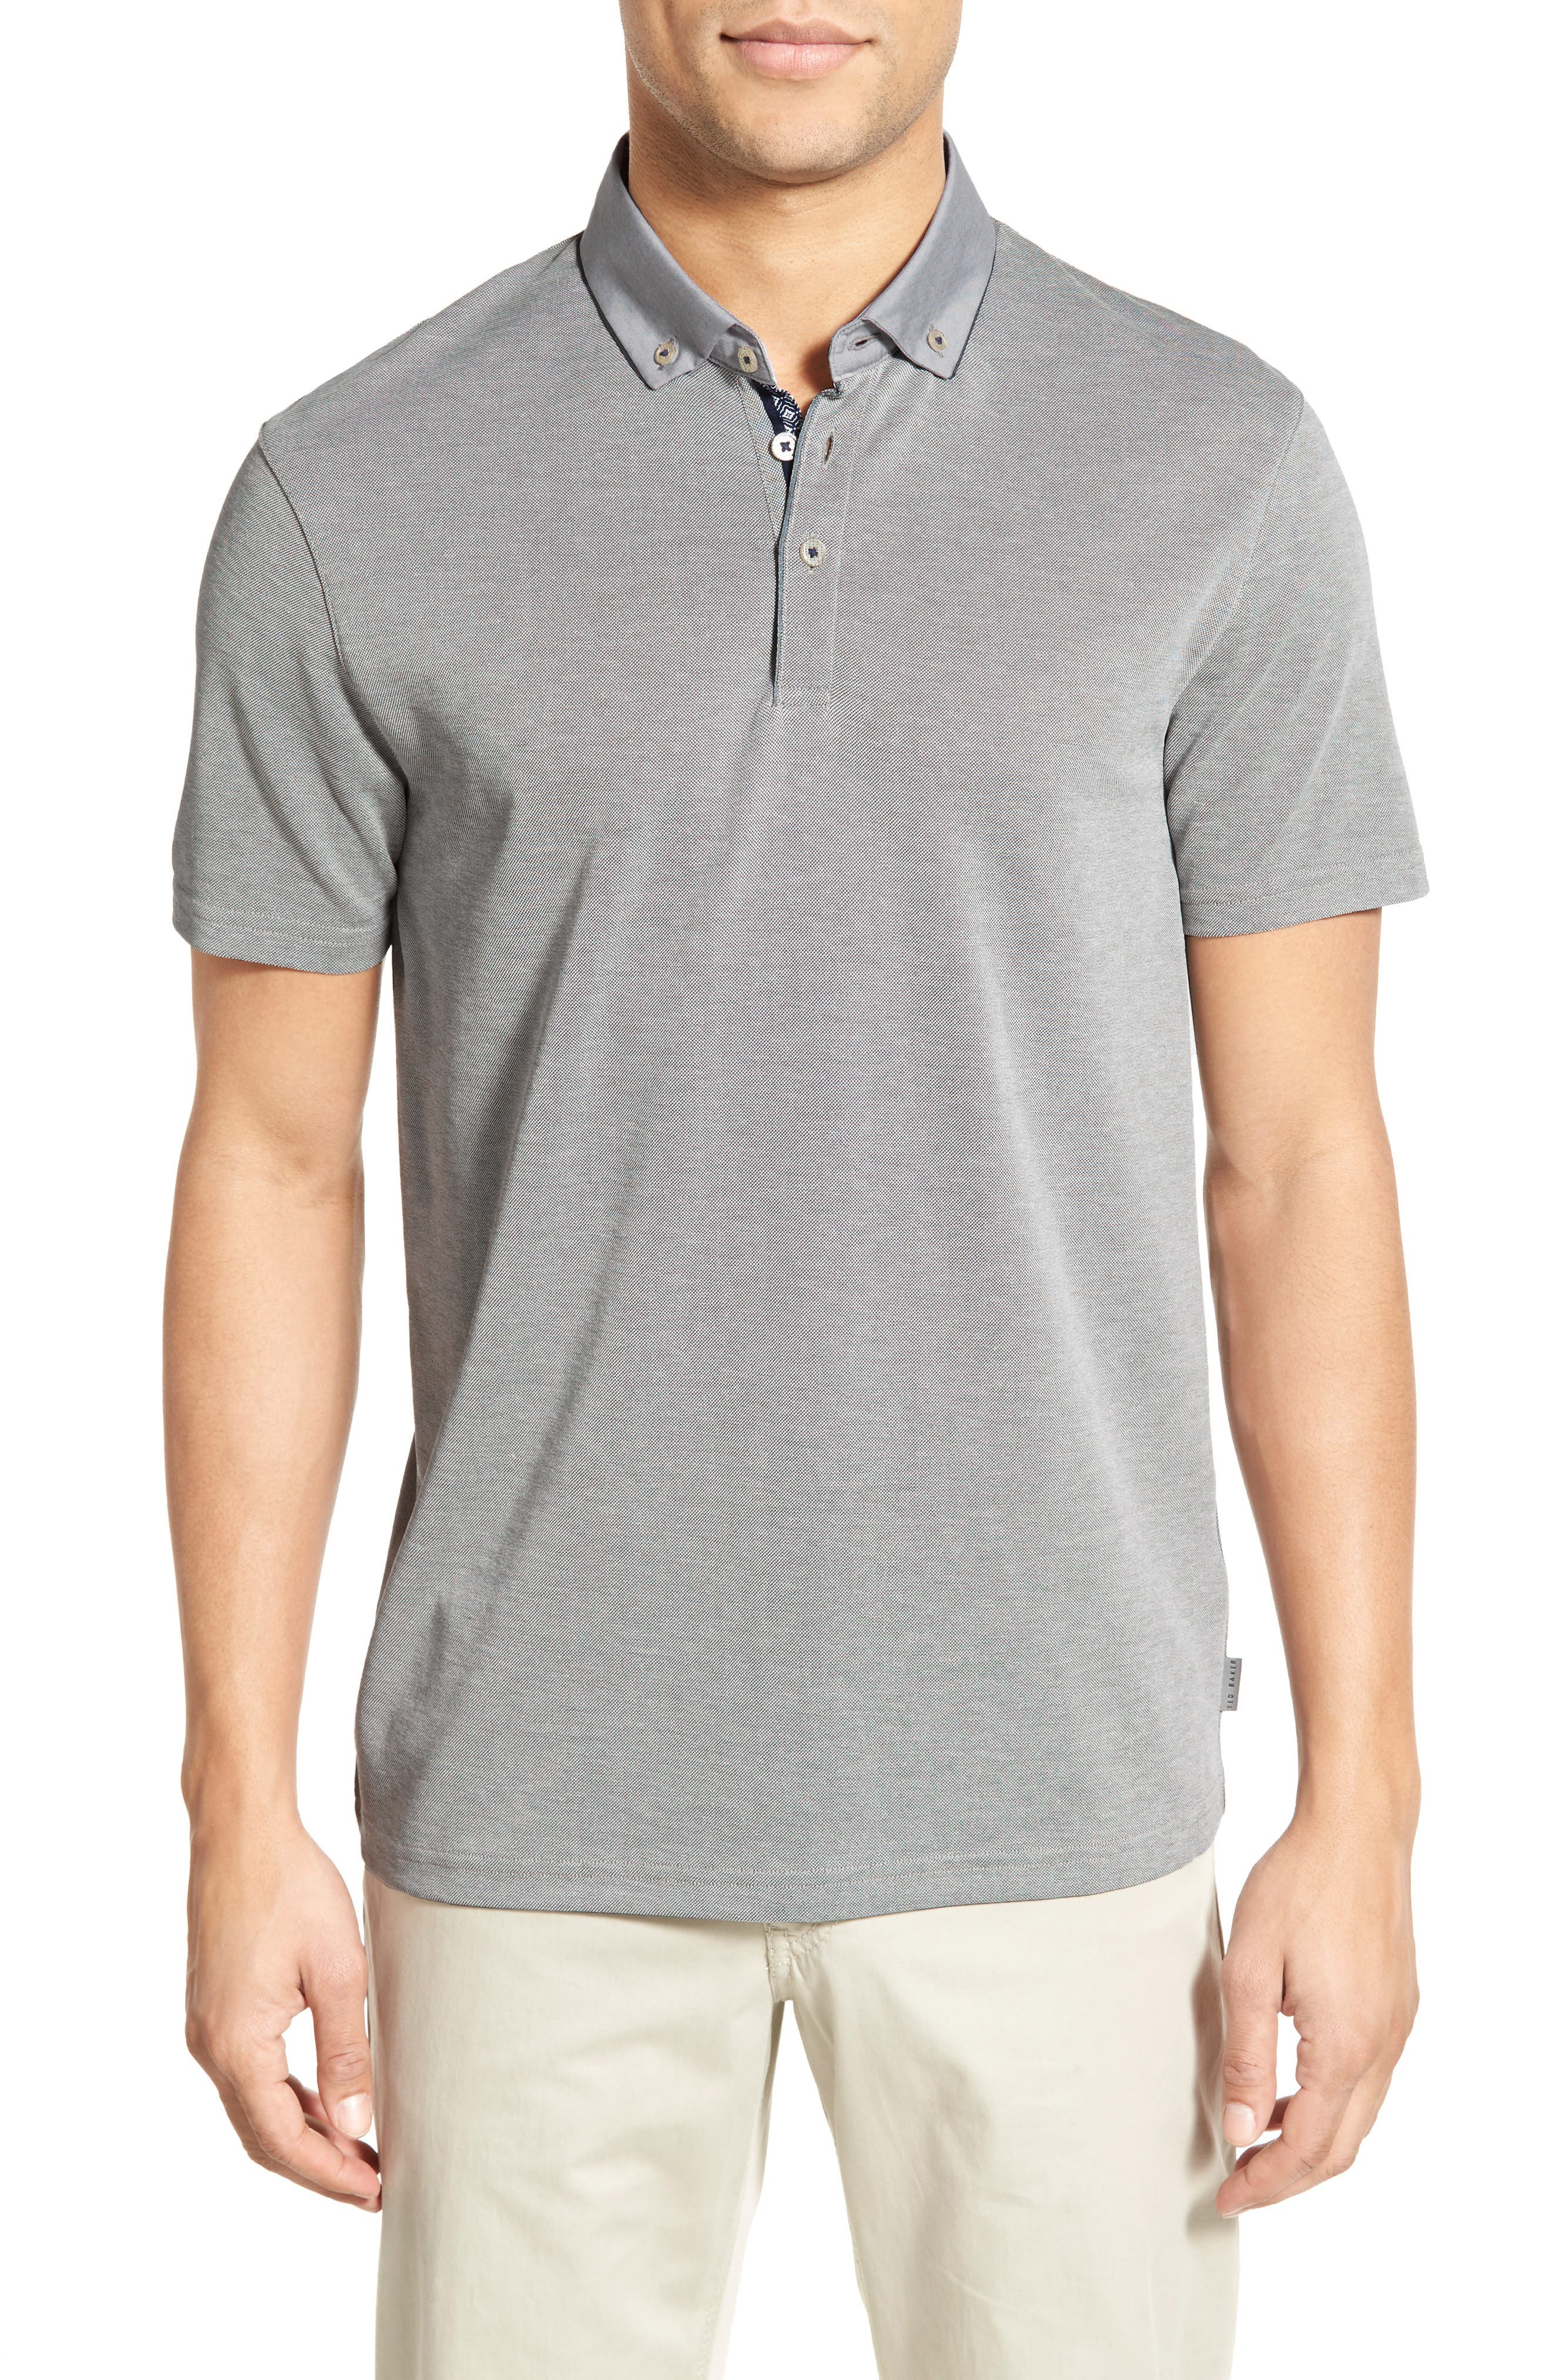 Ted Baker London 'Missow' Modern Trim Fit Piqué Polo